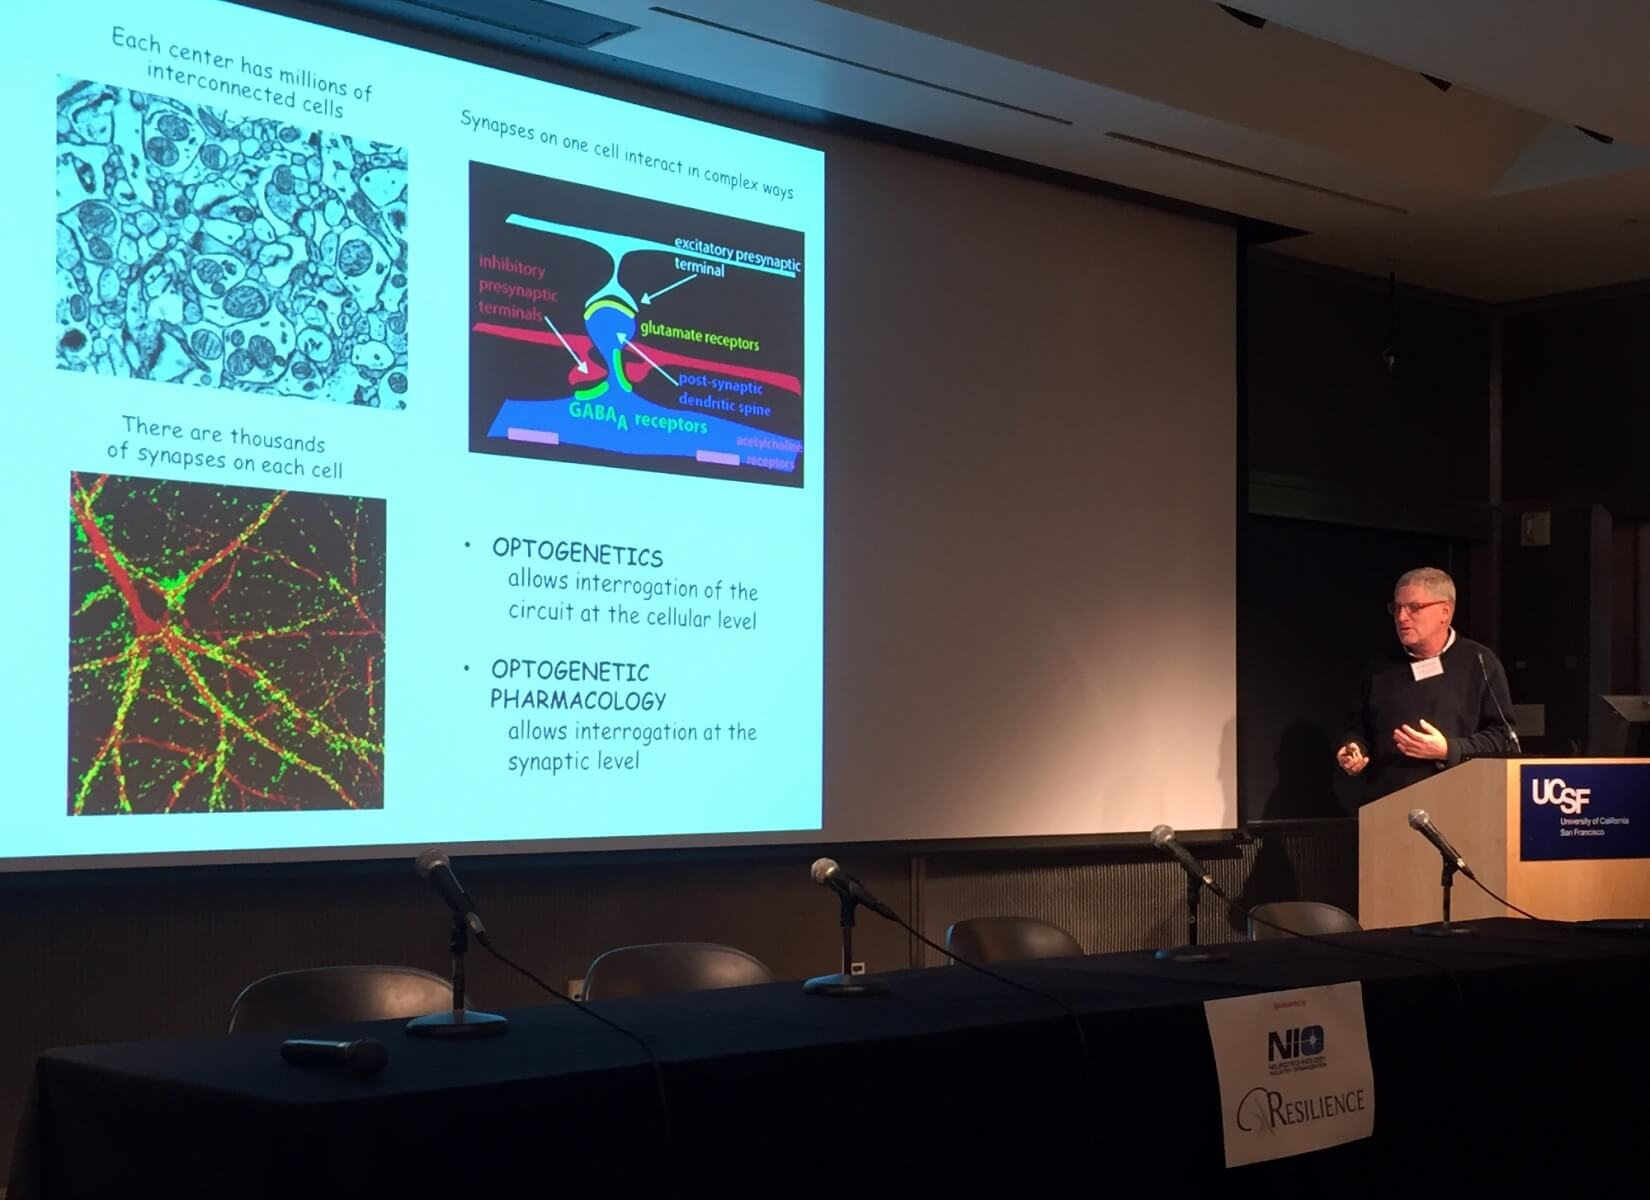 BRAINseed awardee Rich Kramer explains optogenetic pharmacology, a method of controlling synaptic transmission.